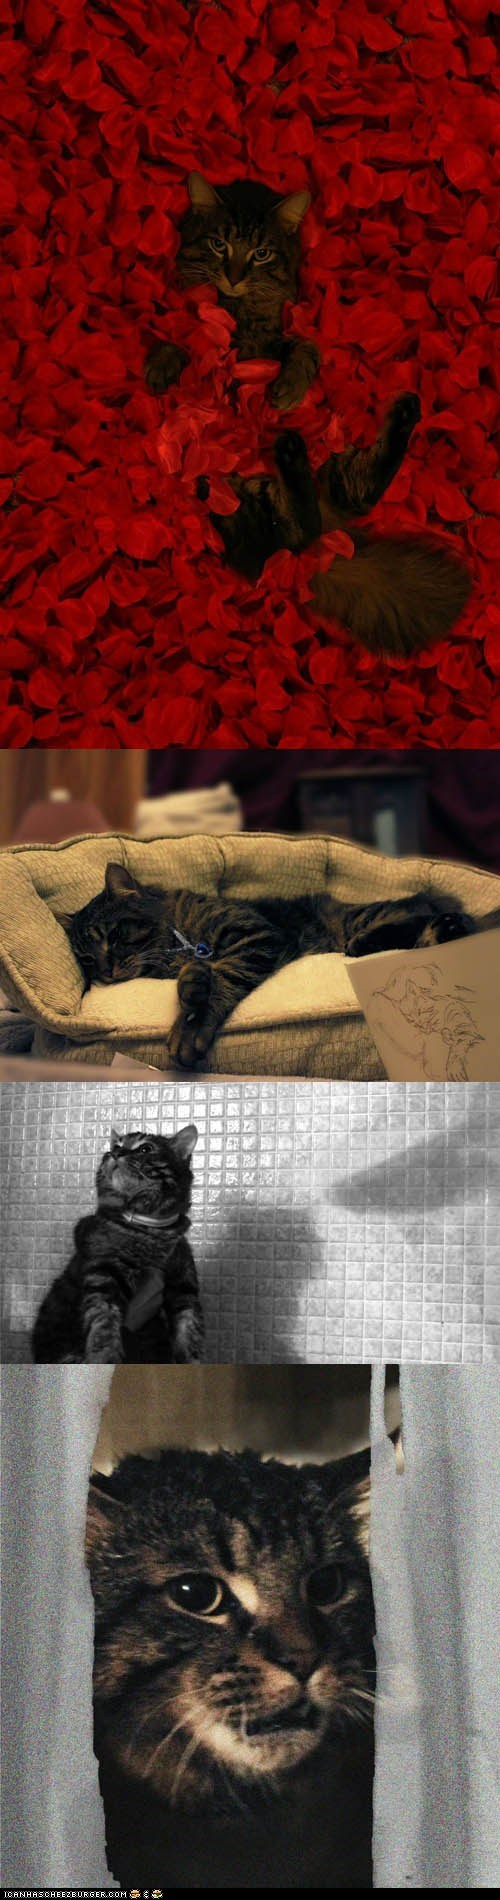 American Beauty Cats films movies psycho reenactments scenes the shining titanic